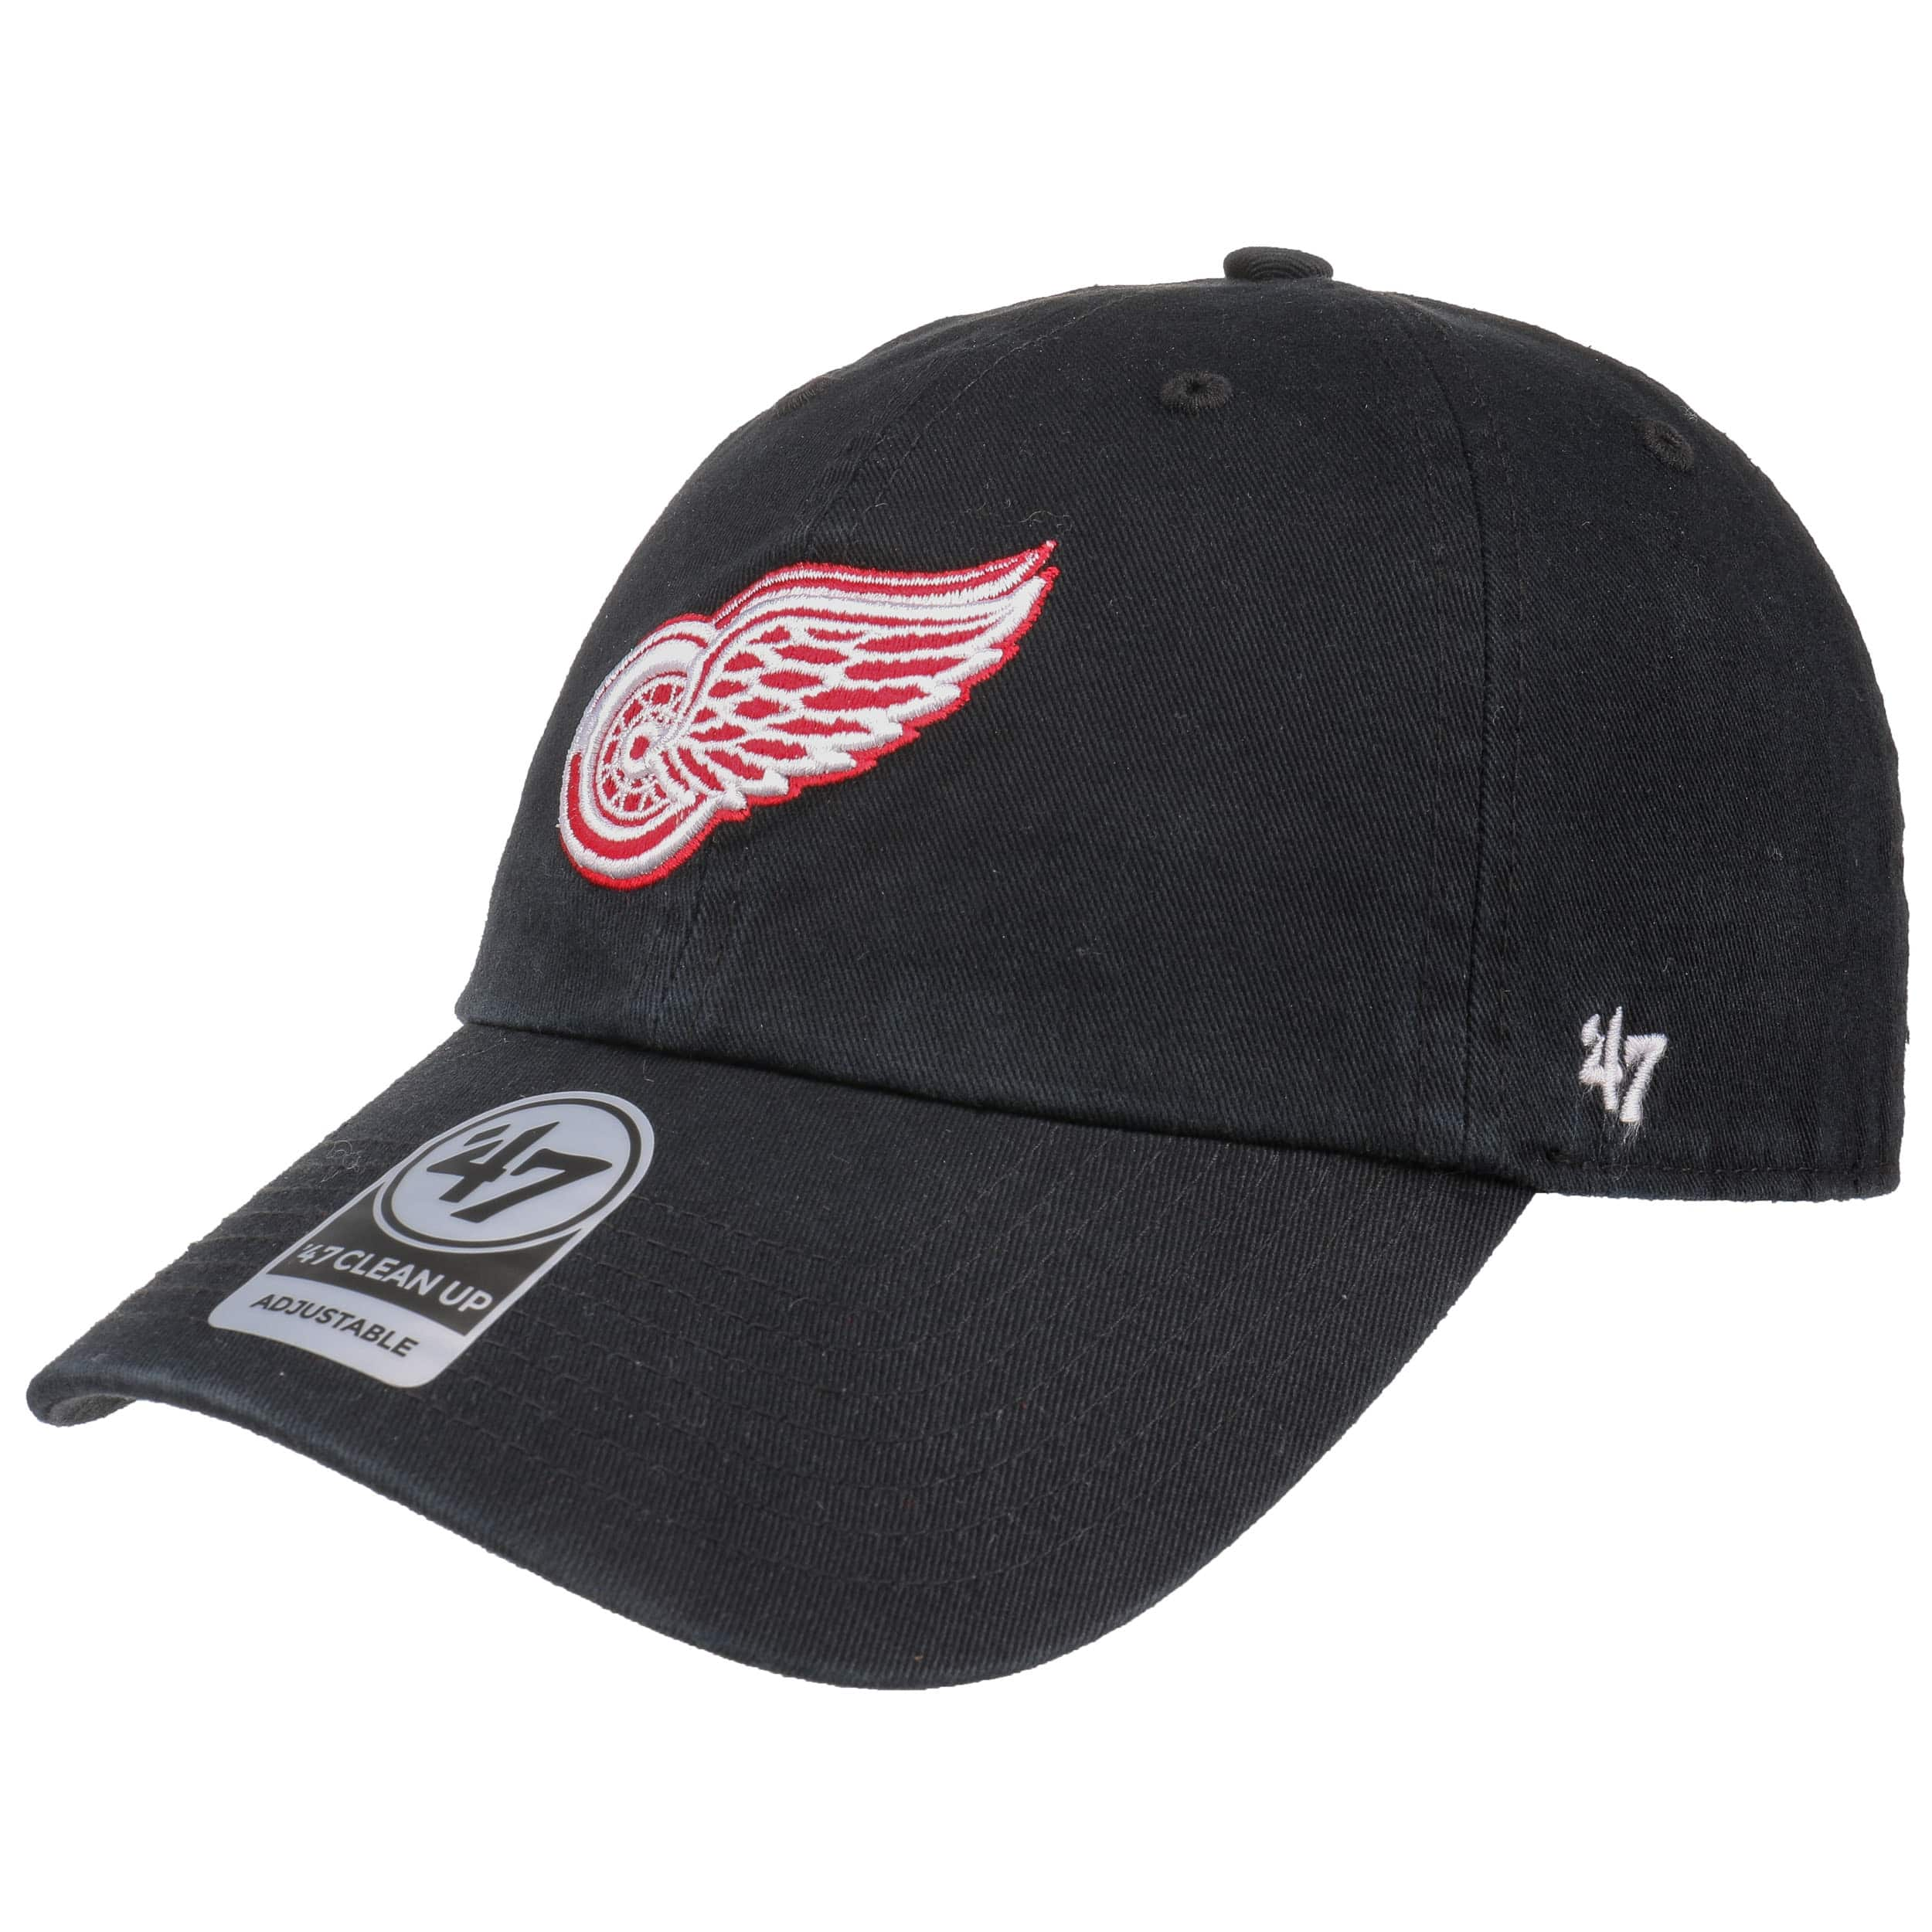 20bb90864de ... low cost cleanup red wings nhl cap by 47 brand 6 51c27 d3b41 ...